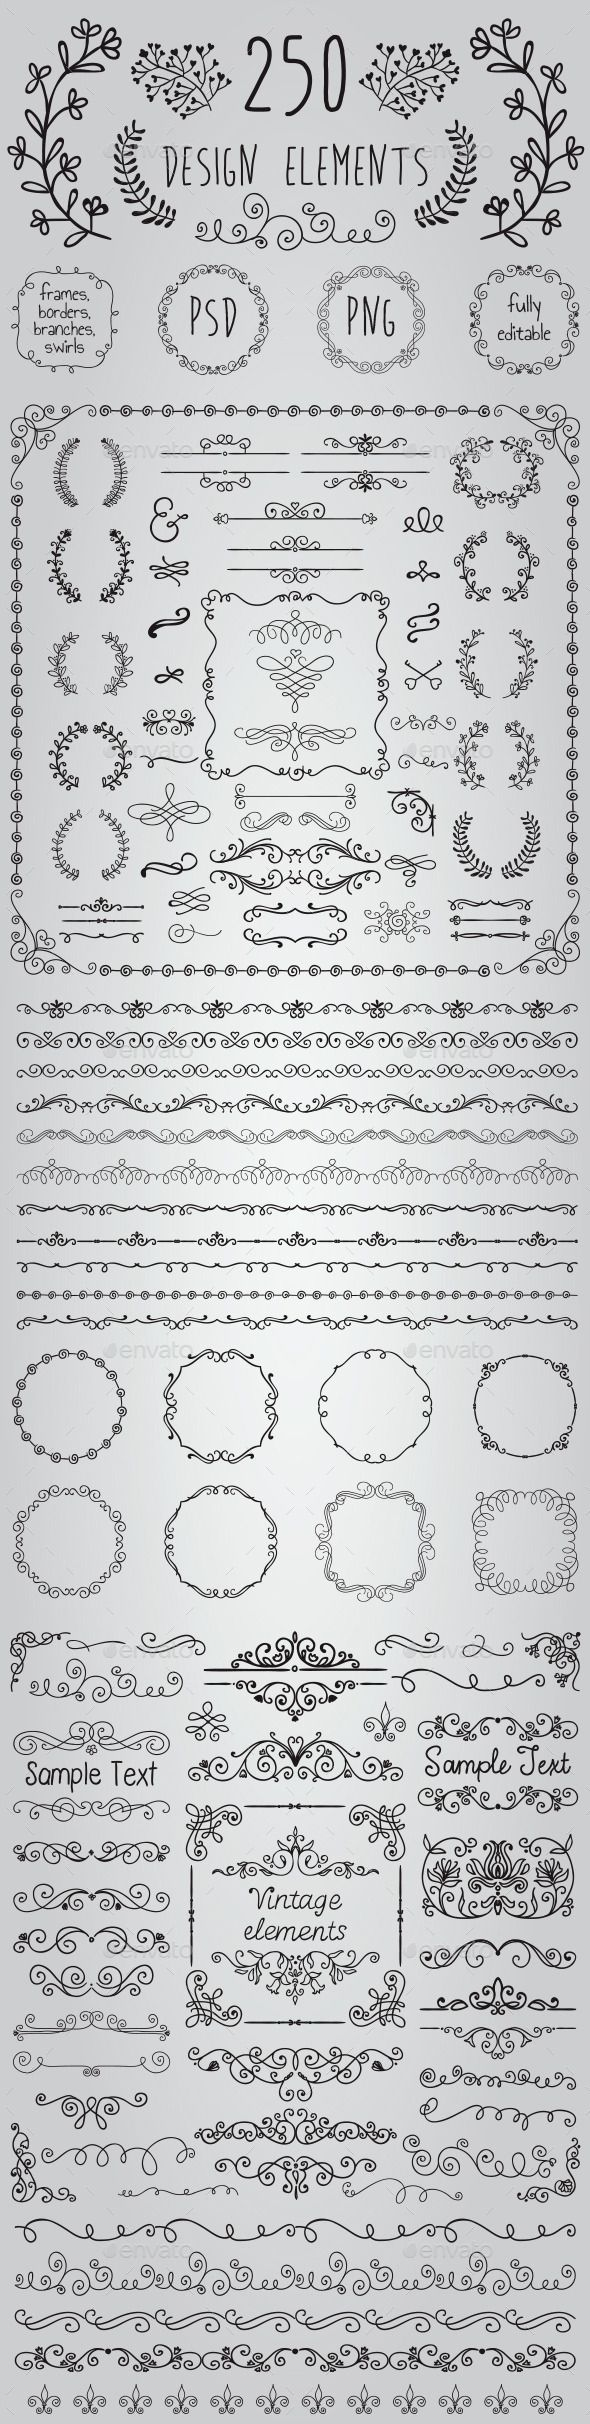 Big Set of 250 Handsketched Design Elements (Transparent PNG, CS, 500x500…